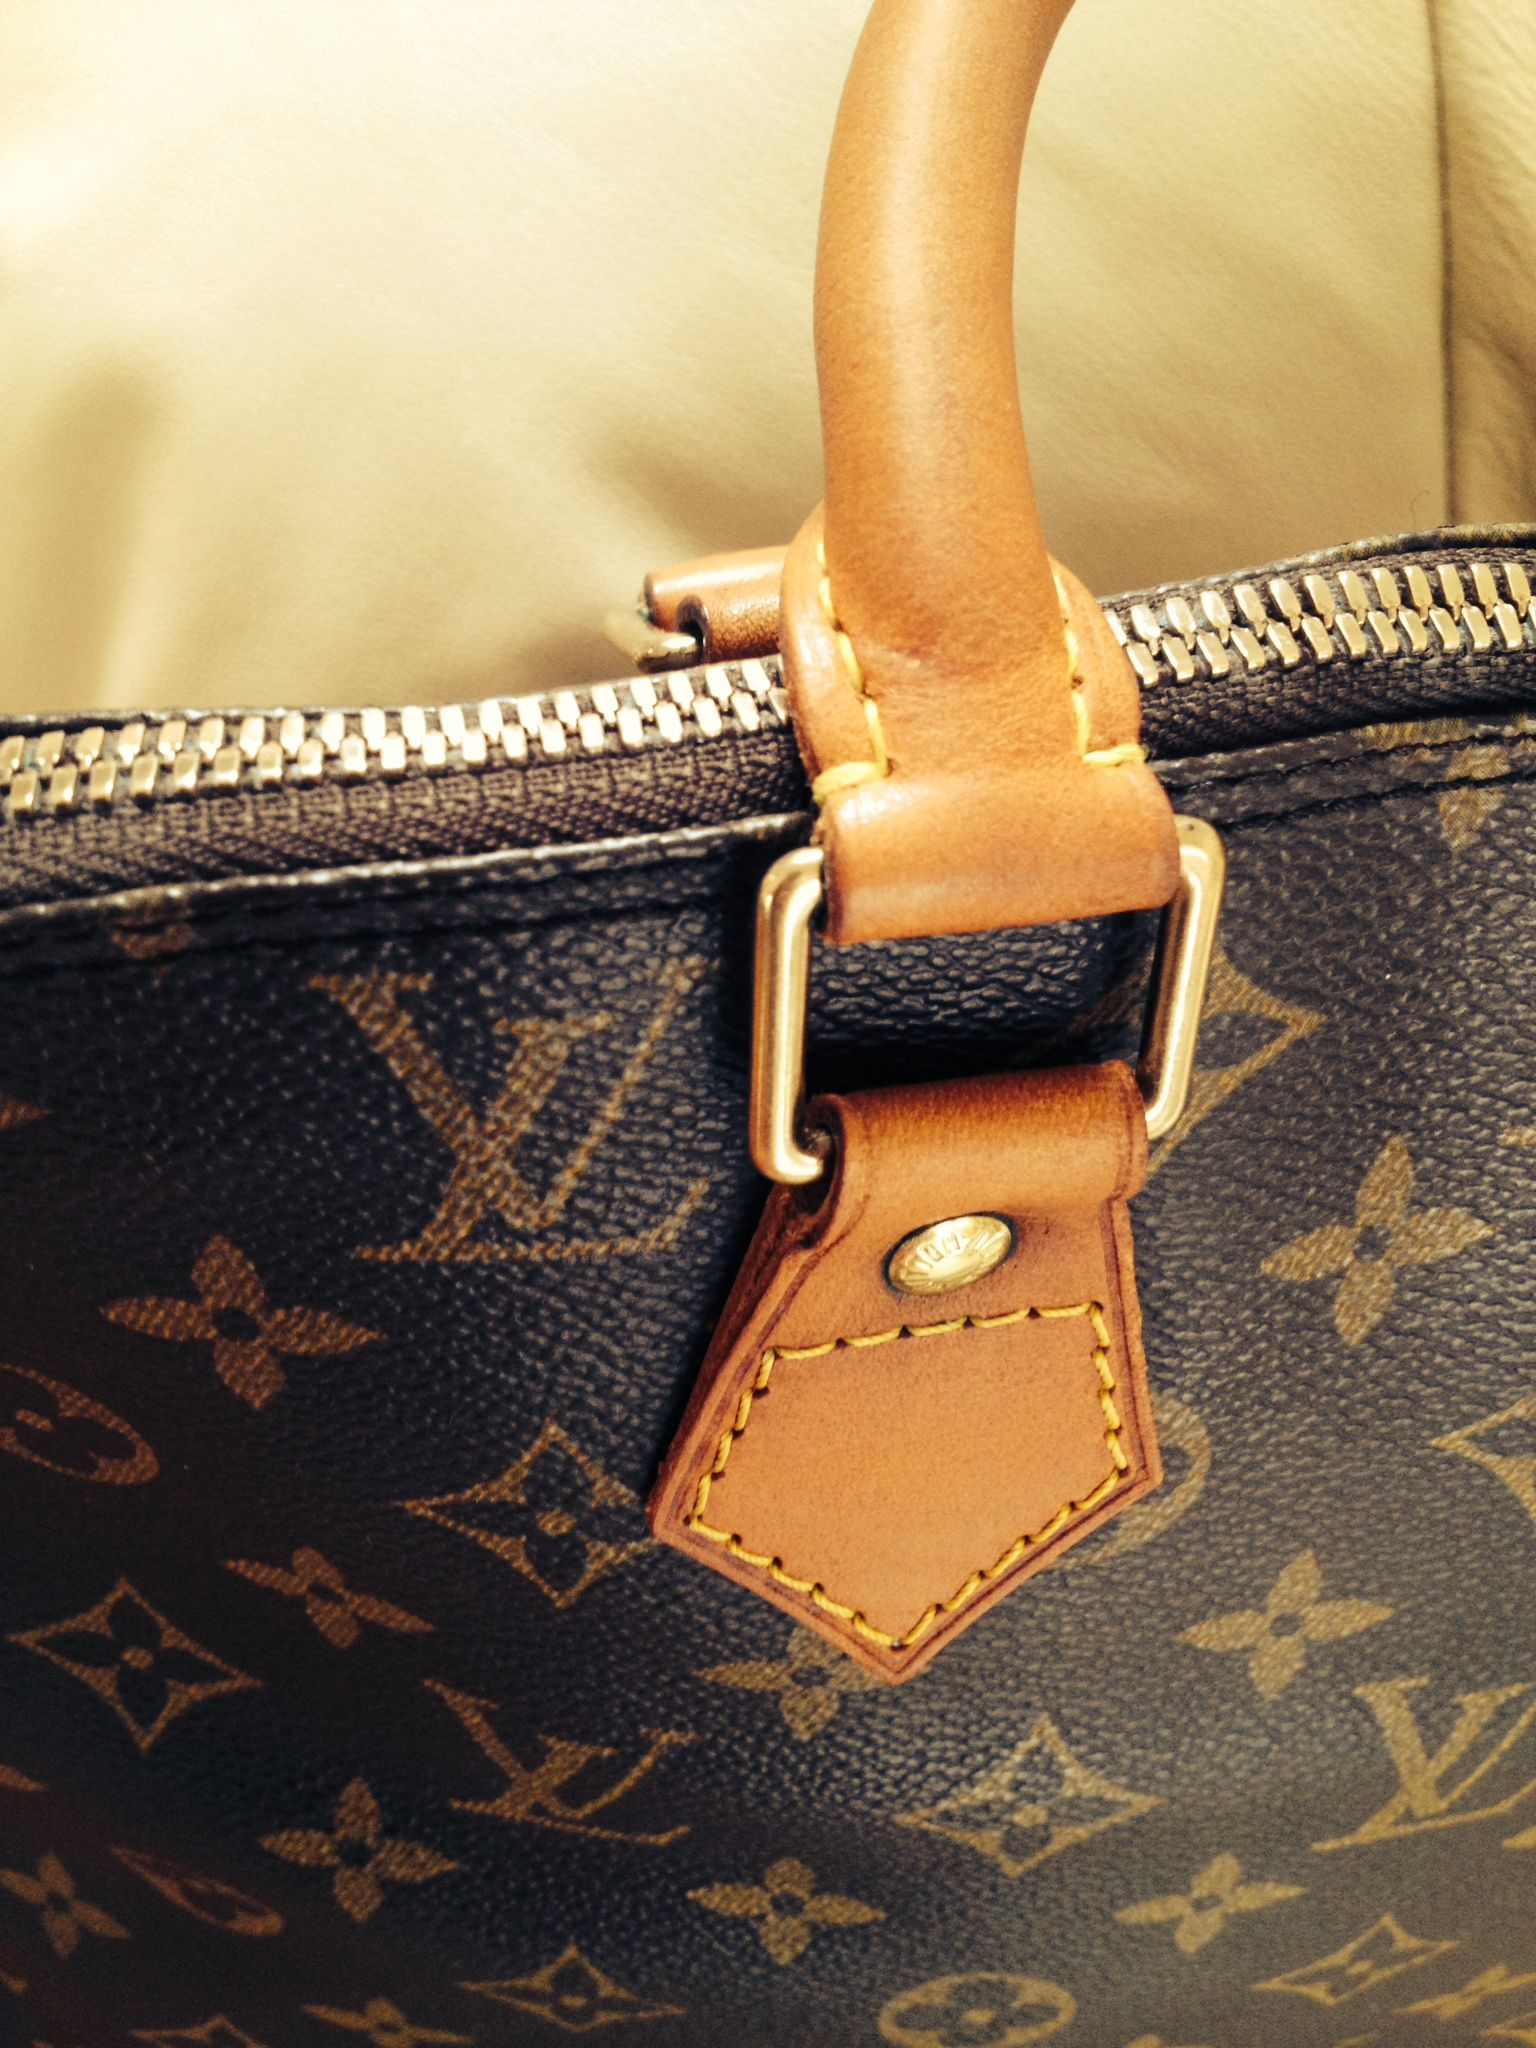 7affe0ea5 Good advise for cleaning many other handbags. How to Refurbish a Louis  Vuitton Bag | Lollipuff